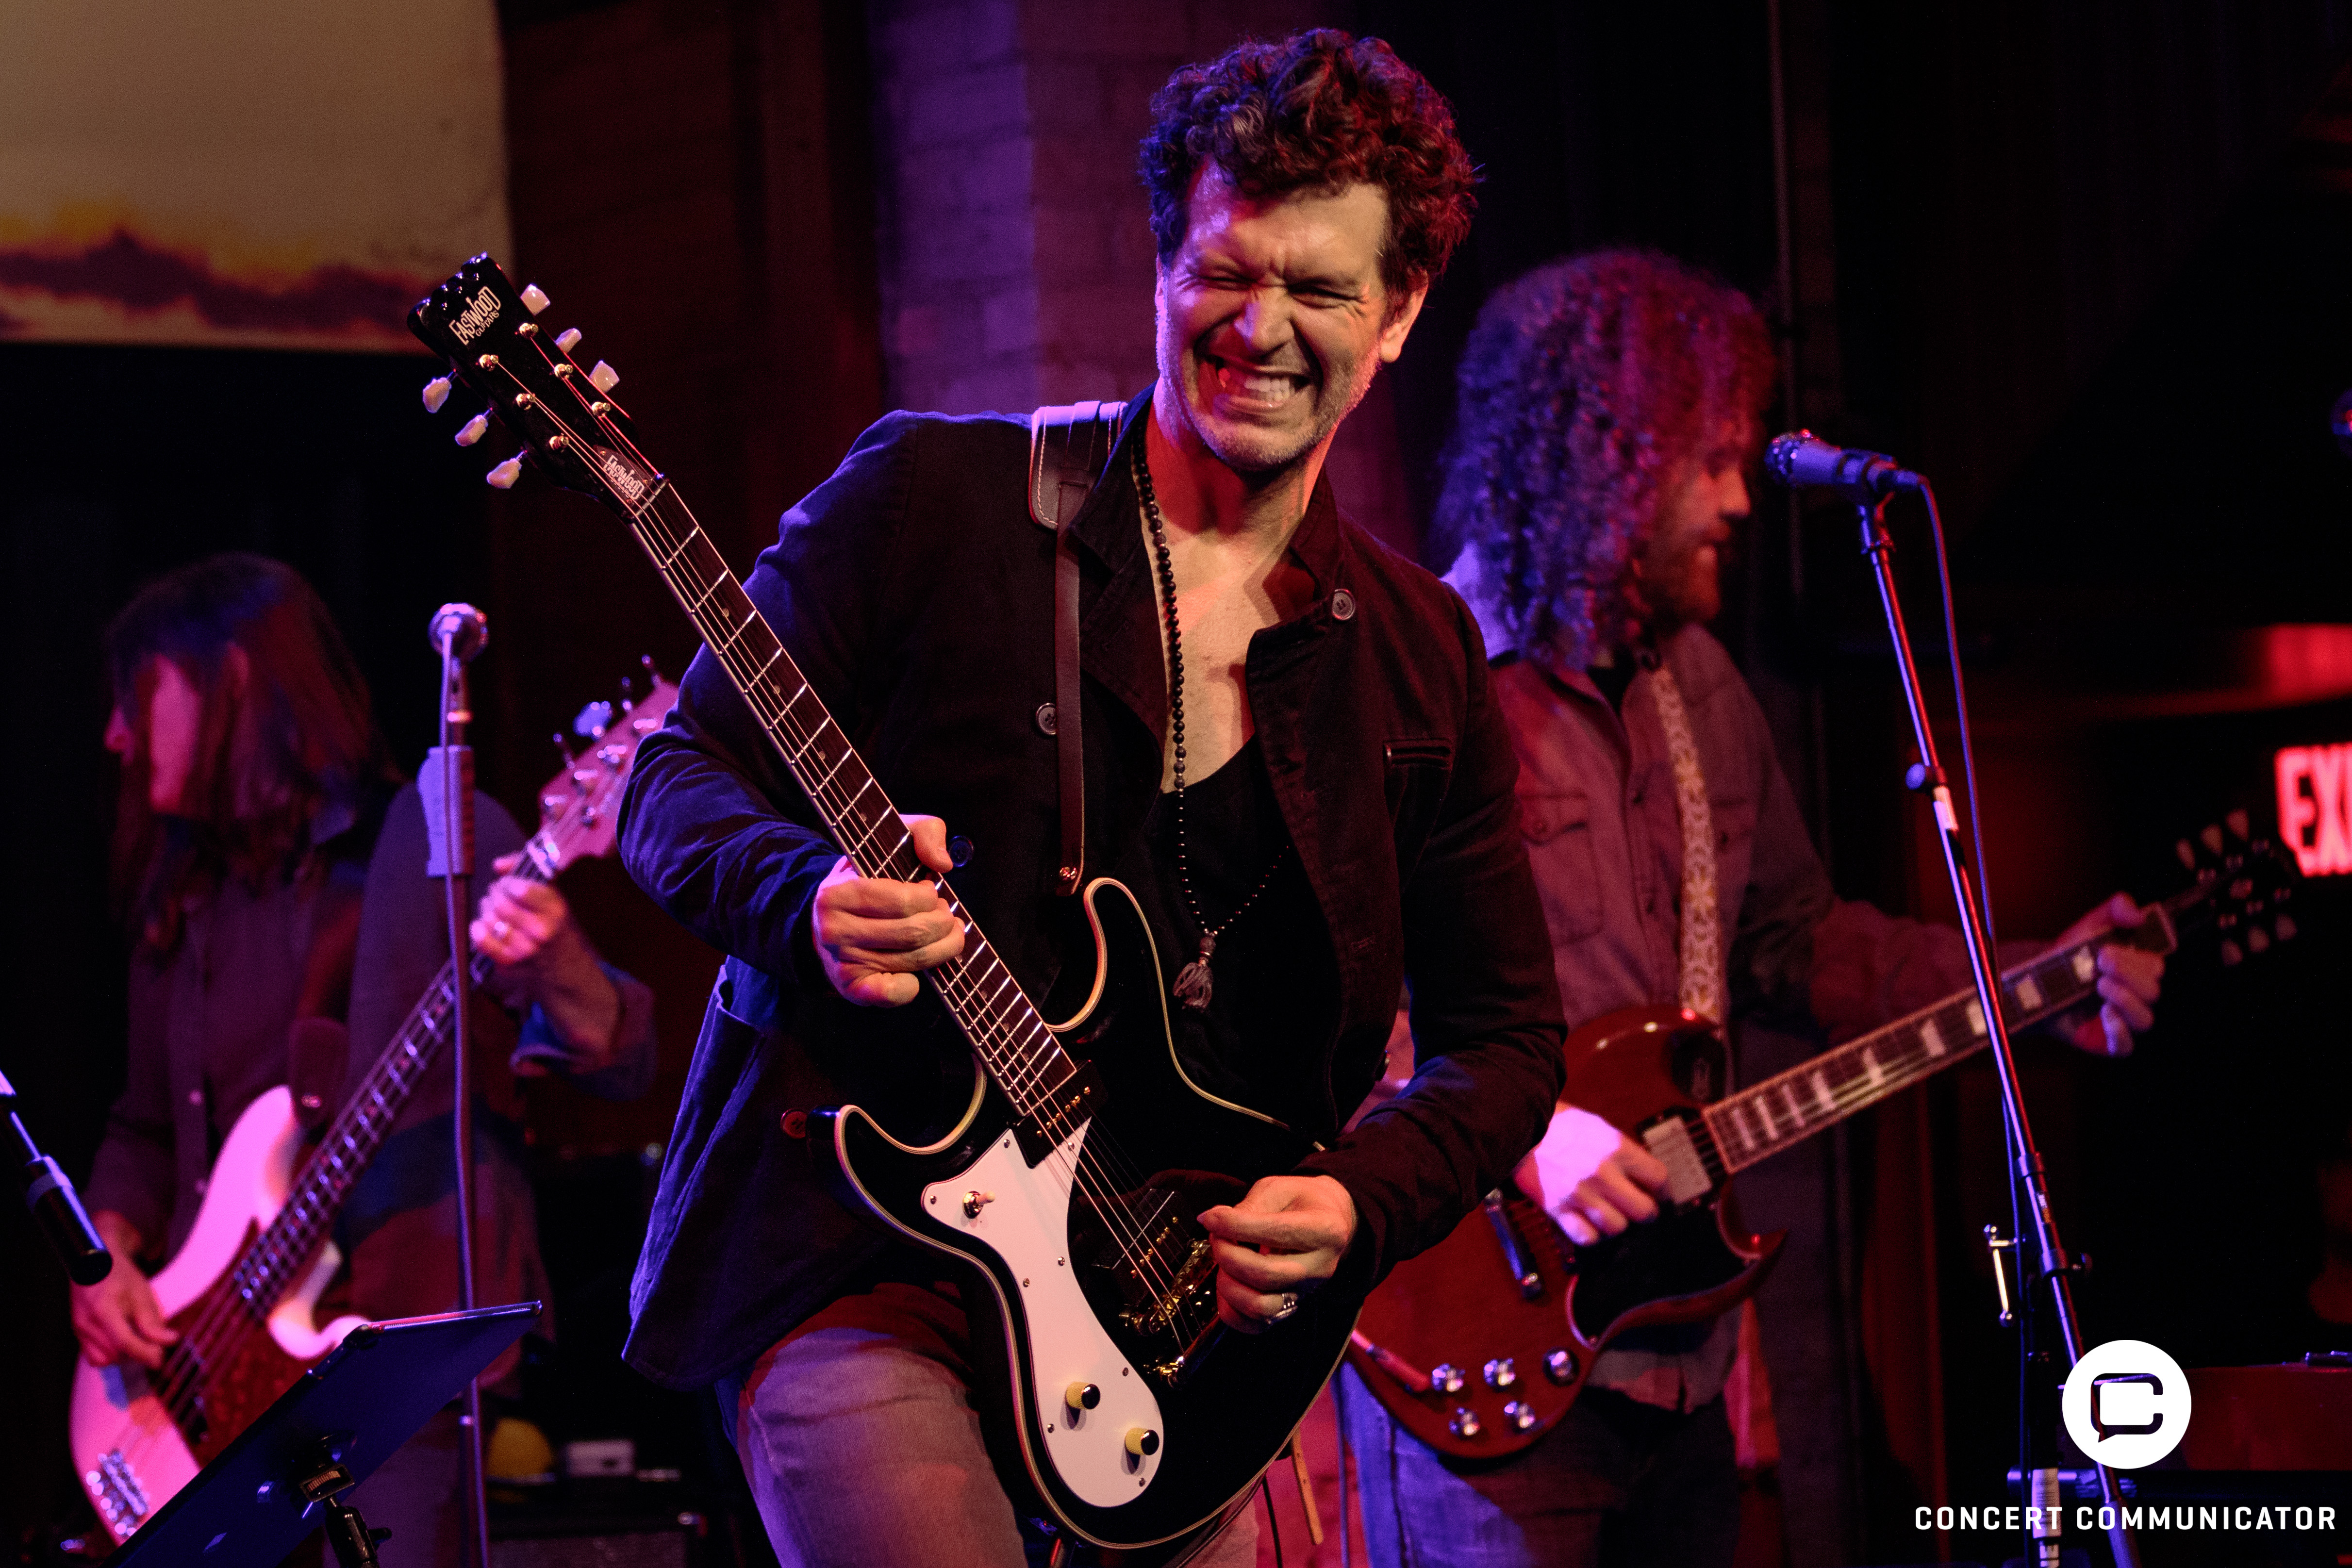 Doyle Bramhall II @ The Hook